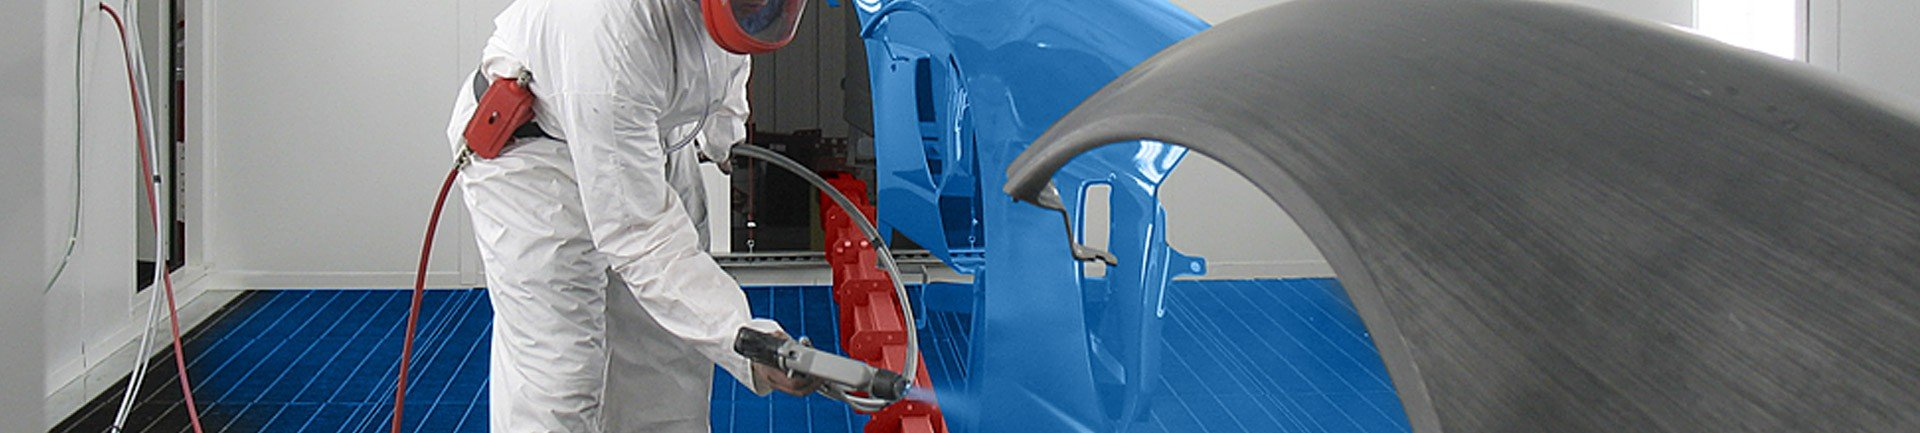 Overhead conveyor systems for automating painting and industrial finishing operations.